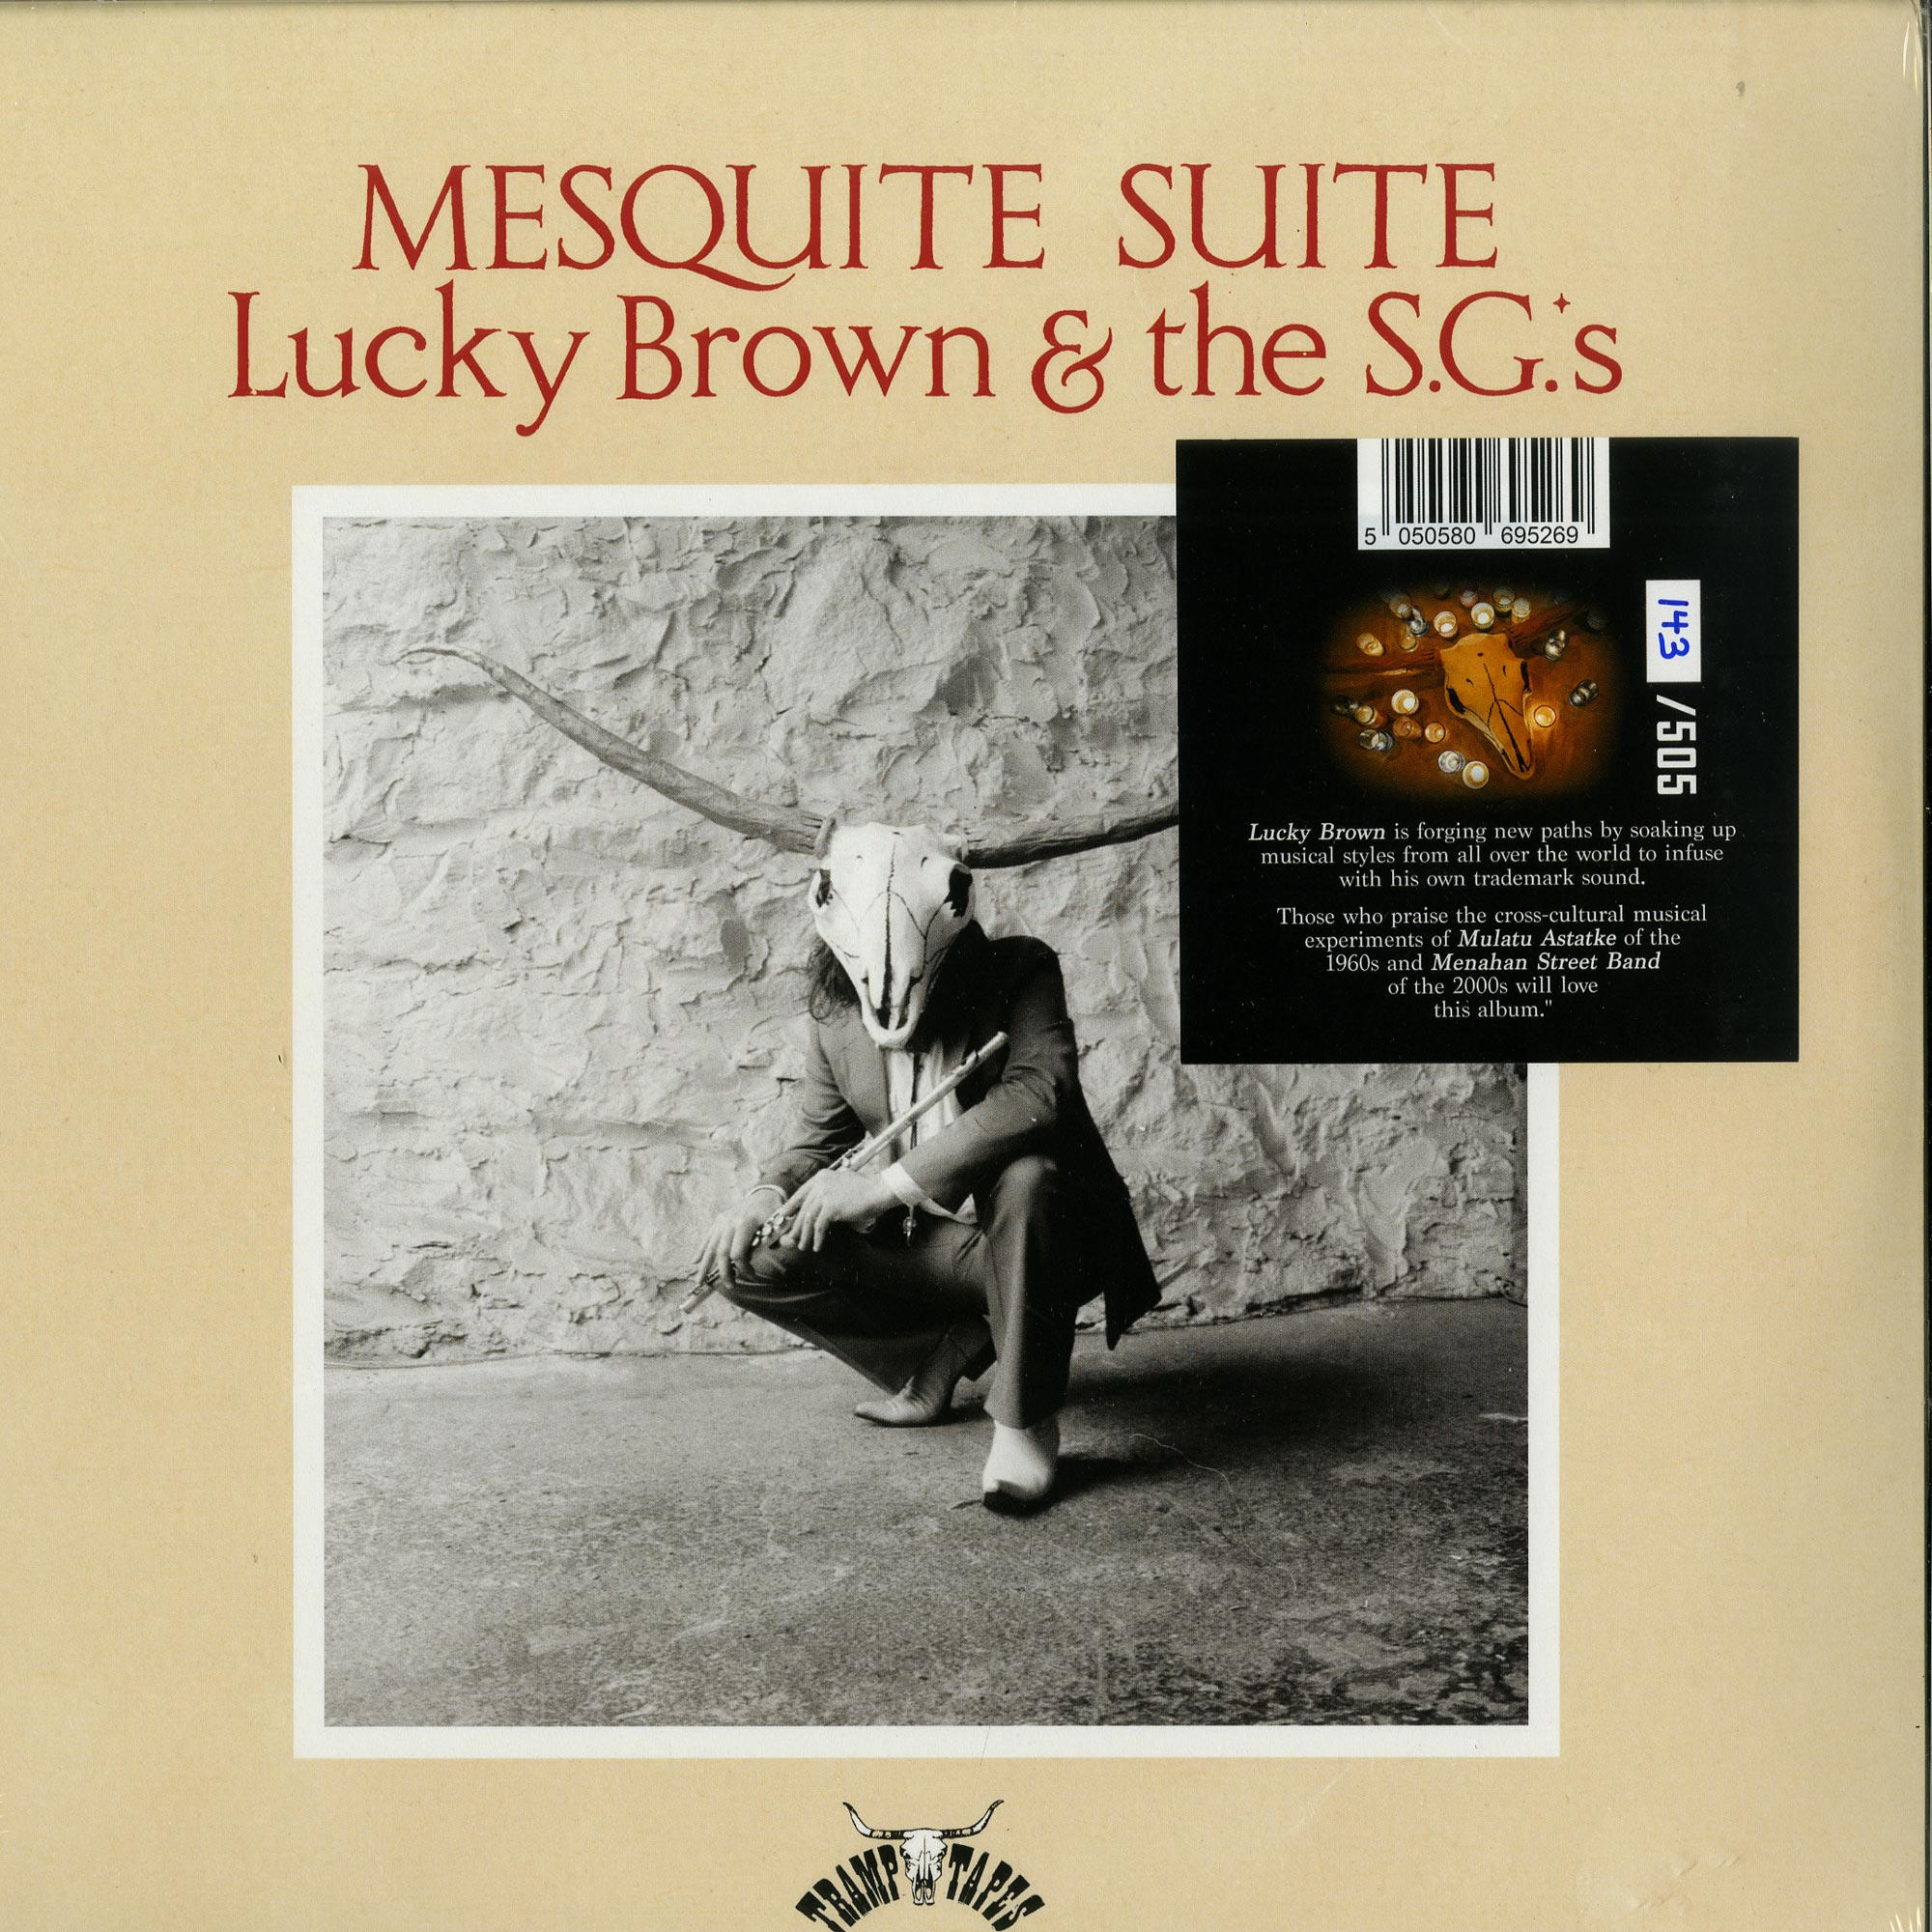 Lucky Brown & The S.G.s - MESQUITE SUITE